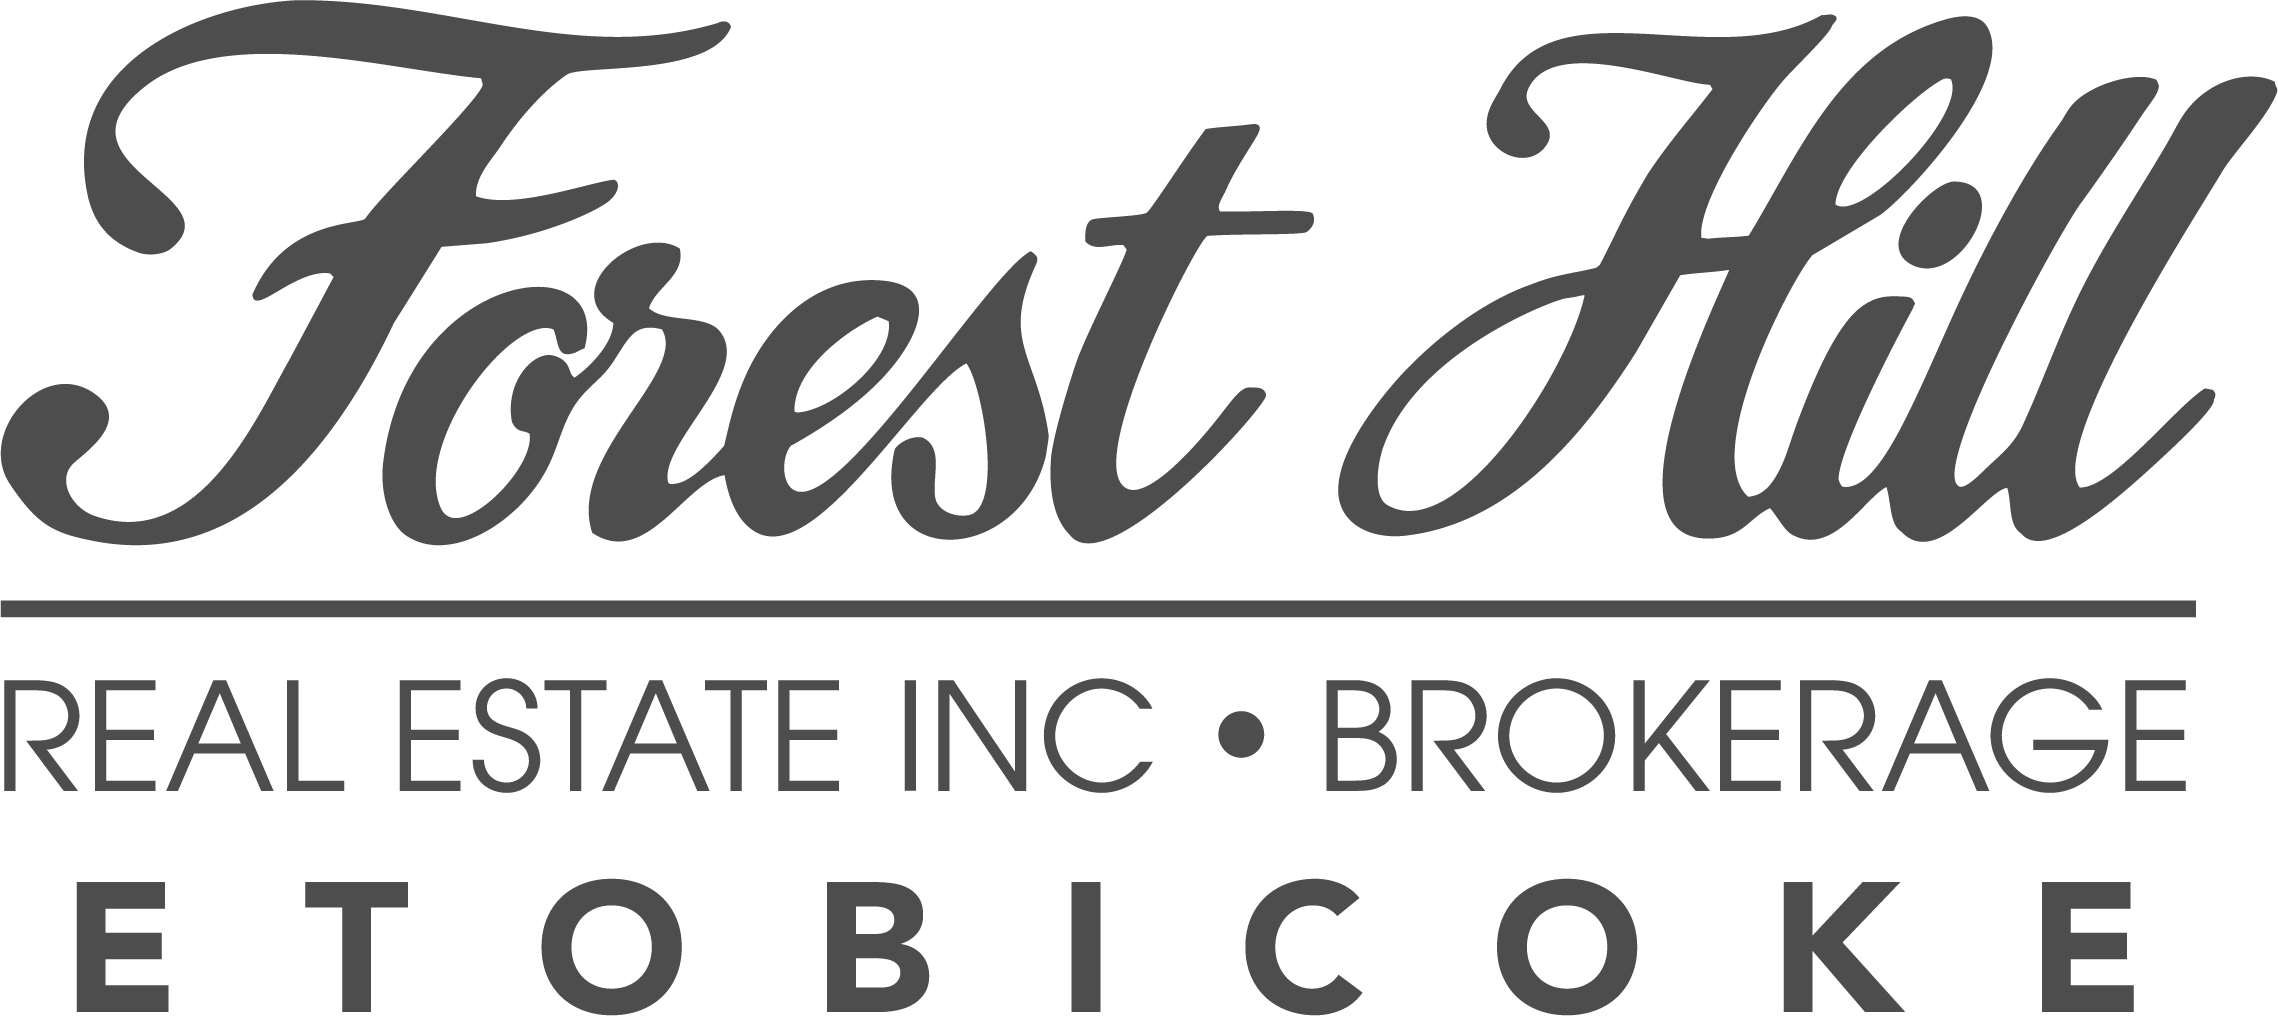 FH Etobicoke | Real Estate Broker